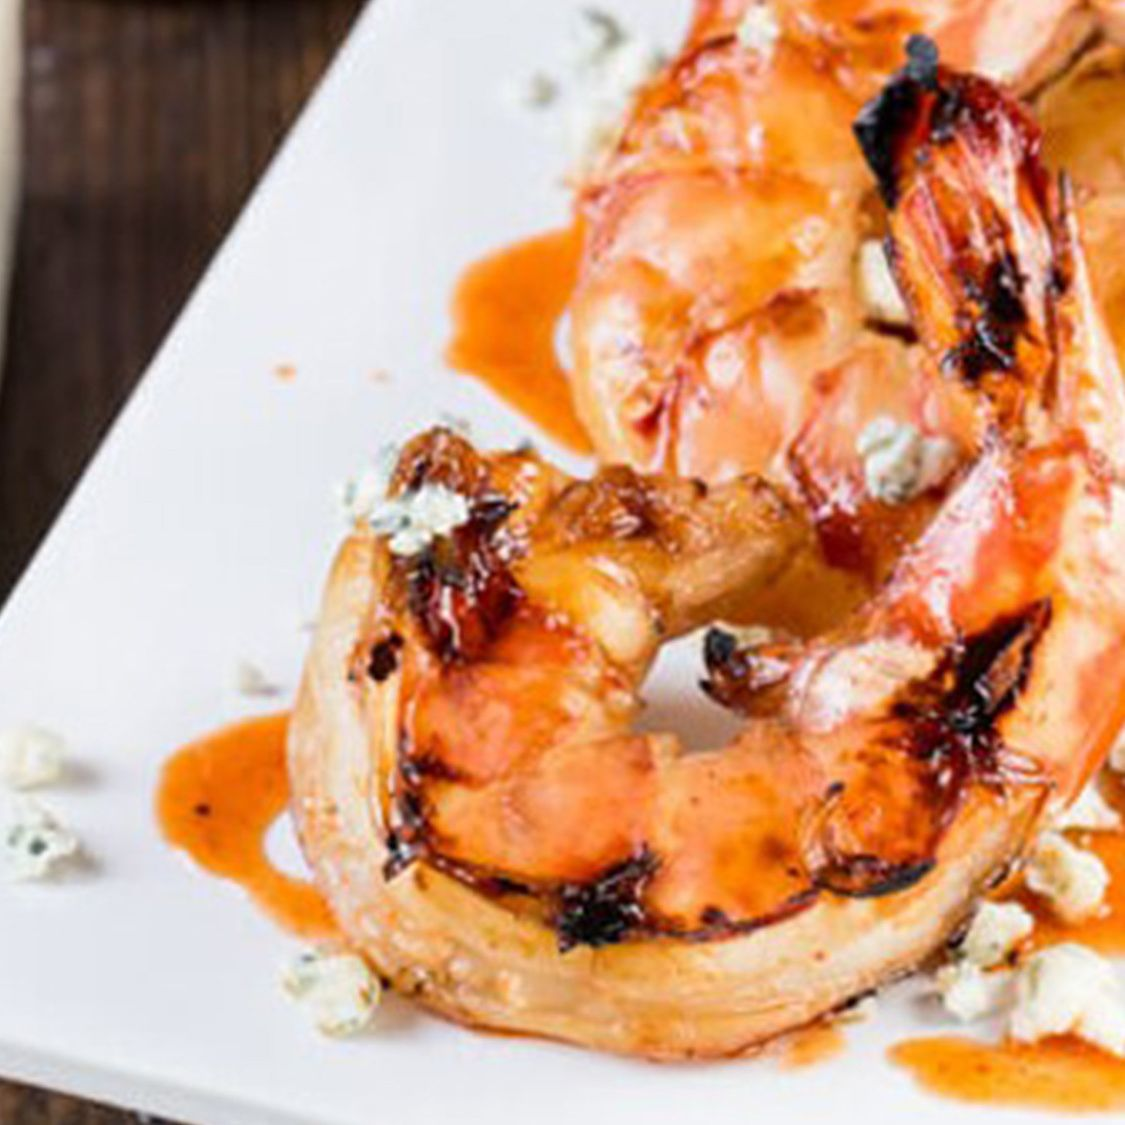 sriracha_grilled_shrimp_with_blue_cheese.jpg